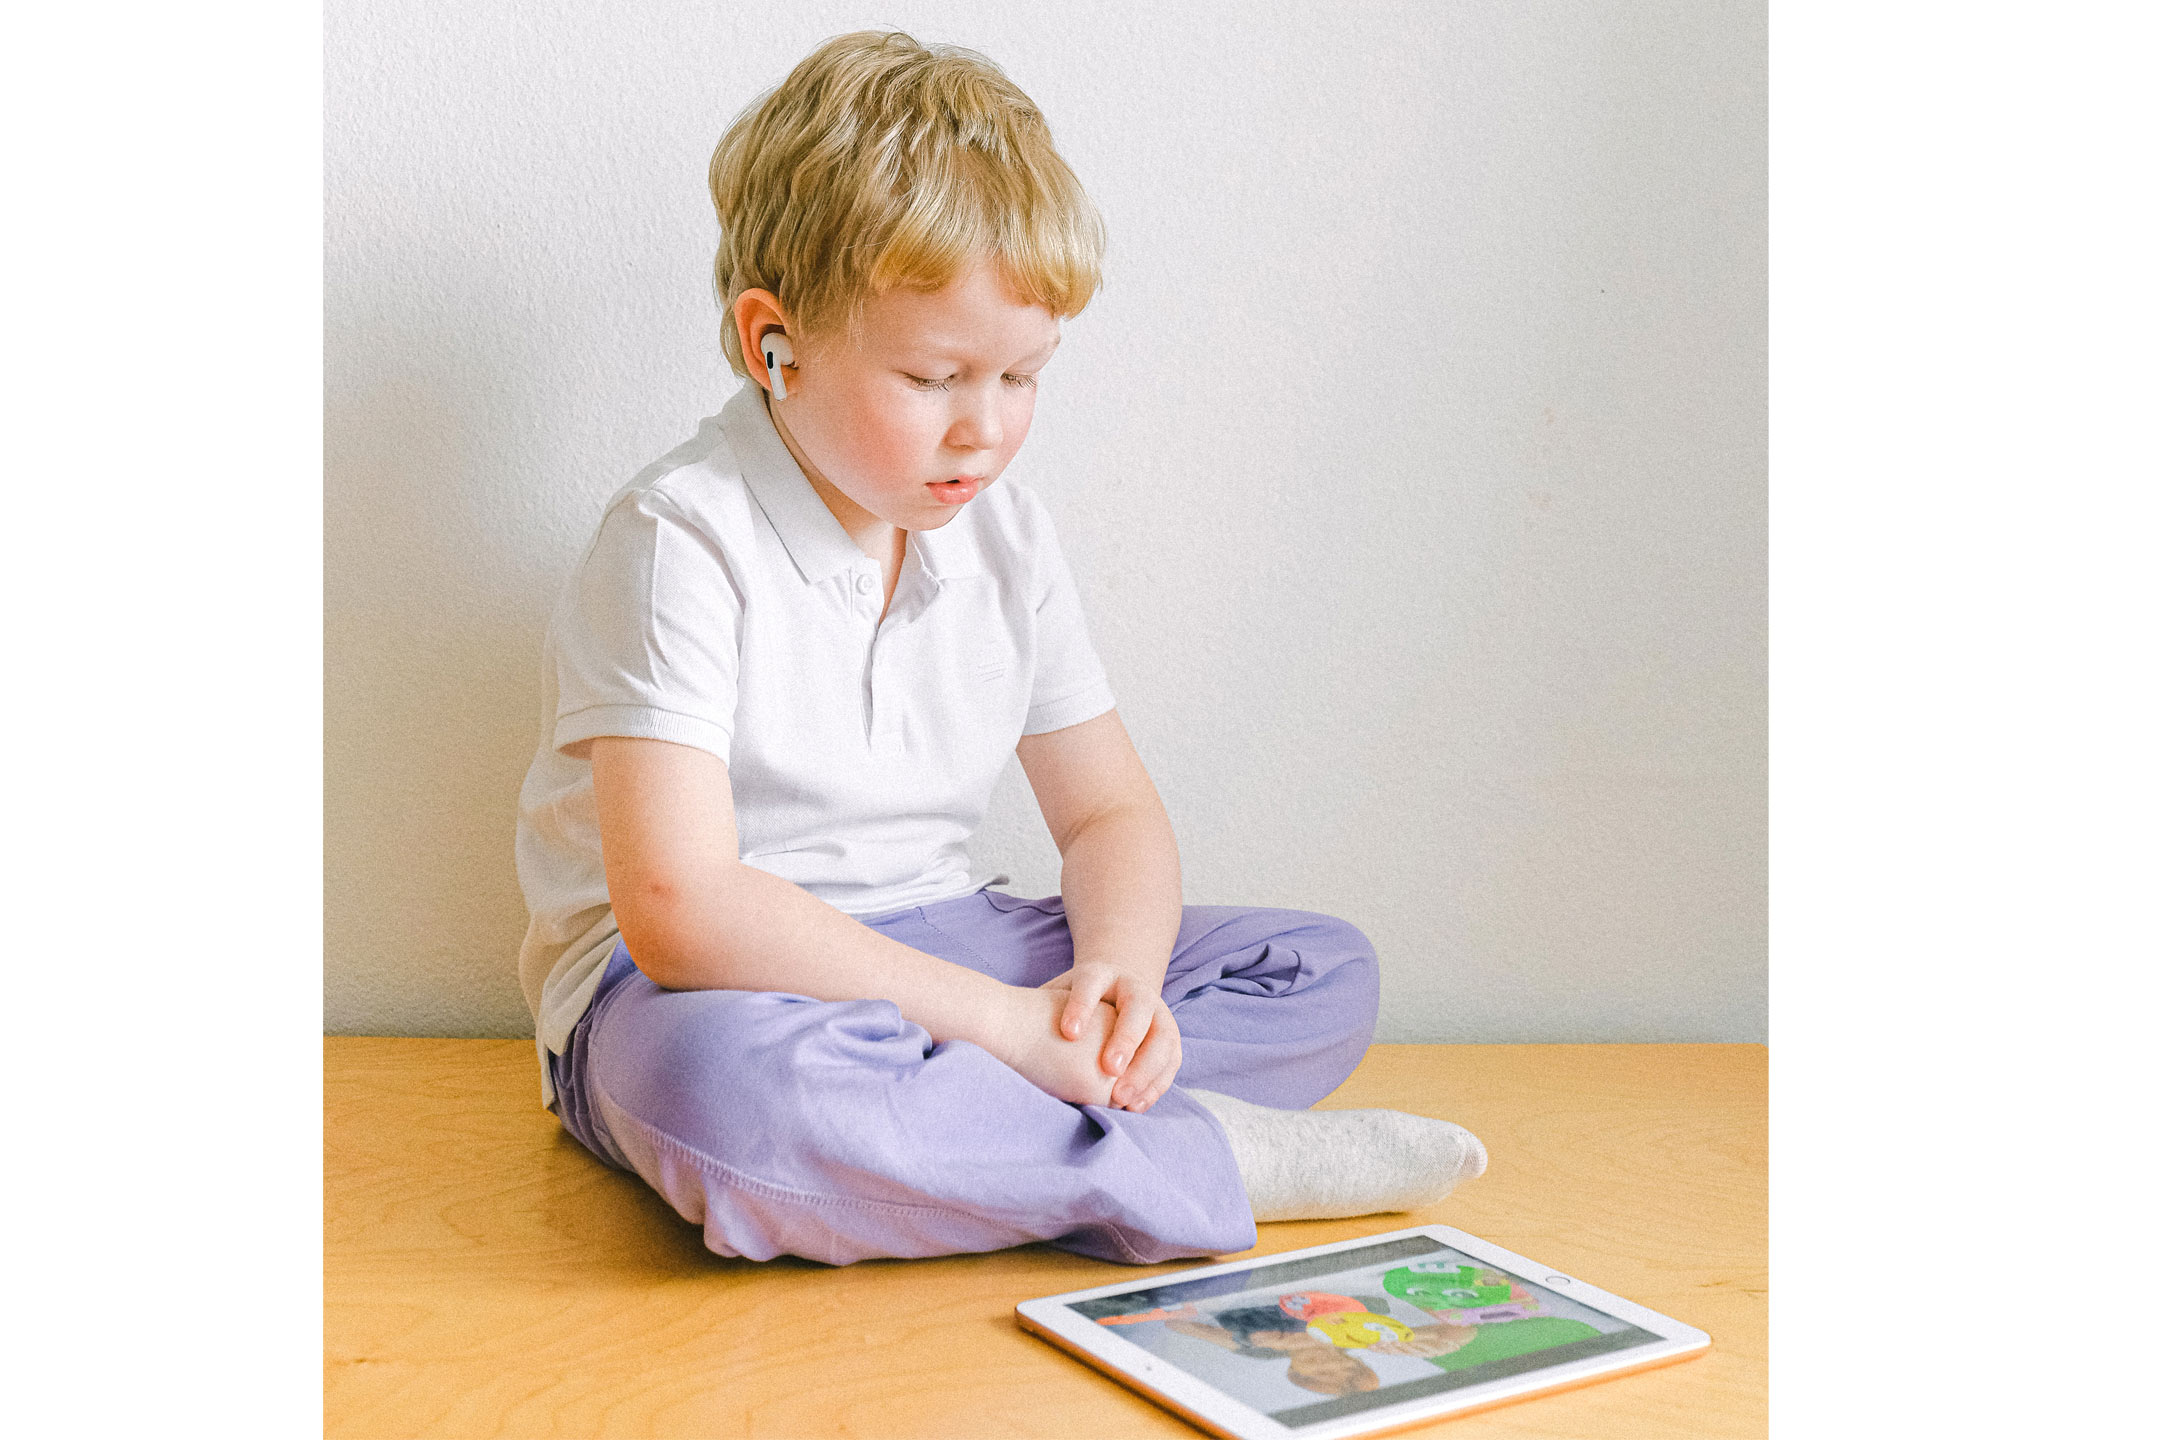 young-boy-looking-at-ipad2160